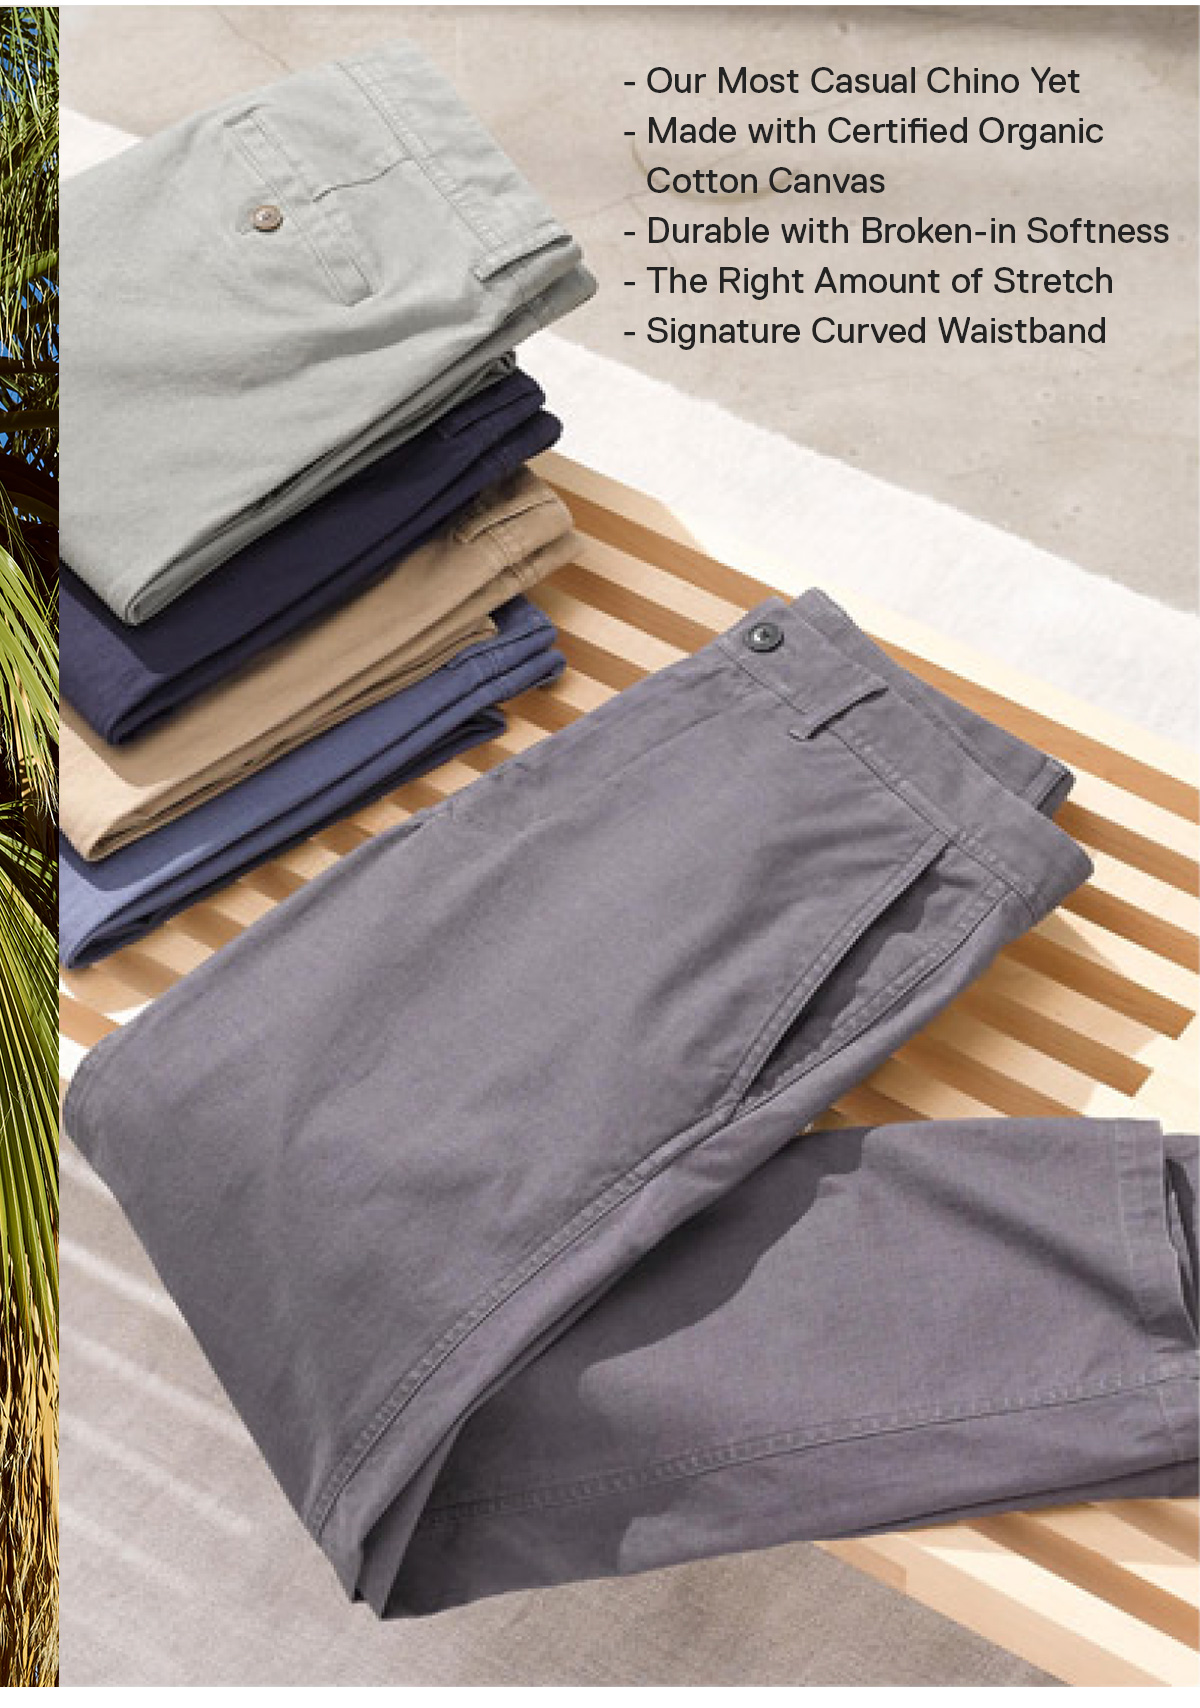 Our Most Casual Chino Yet / Certified Organic Cotton / Durable with Broken-in Softness / The Right Amount of Stretch / Signature Curved Waistband